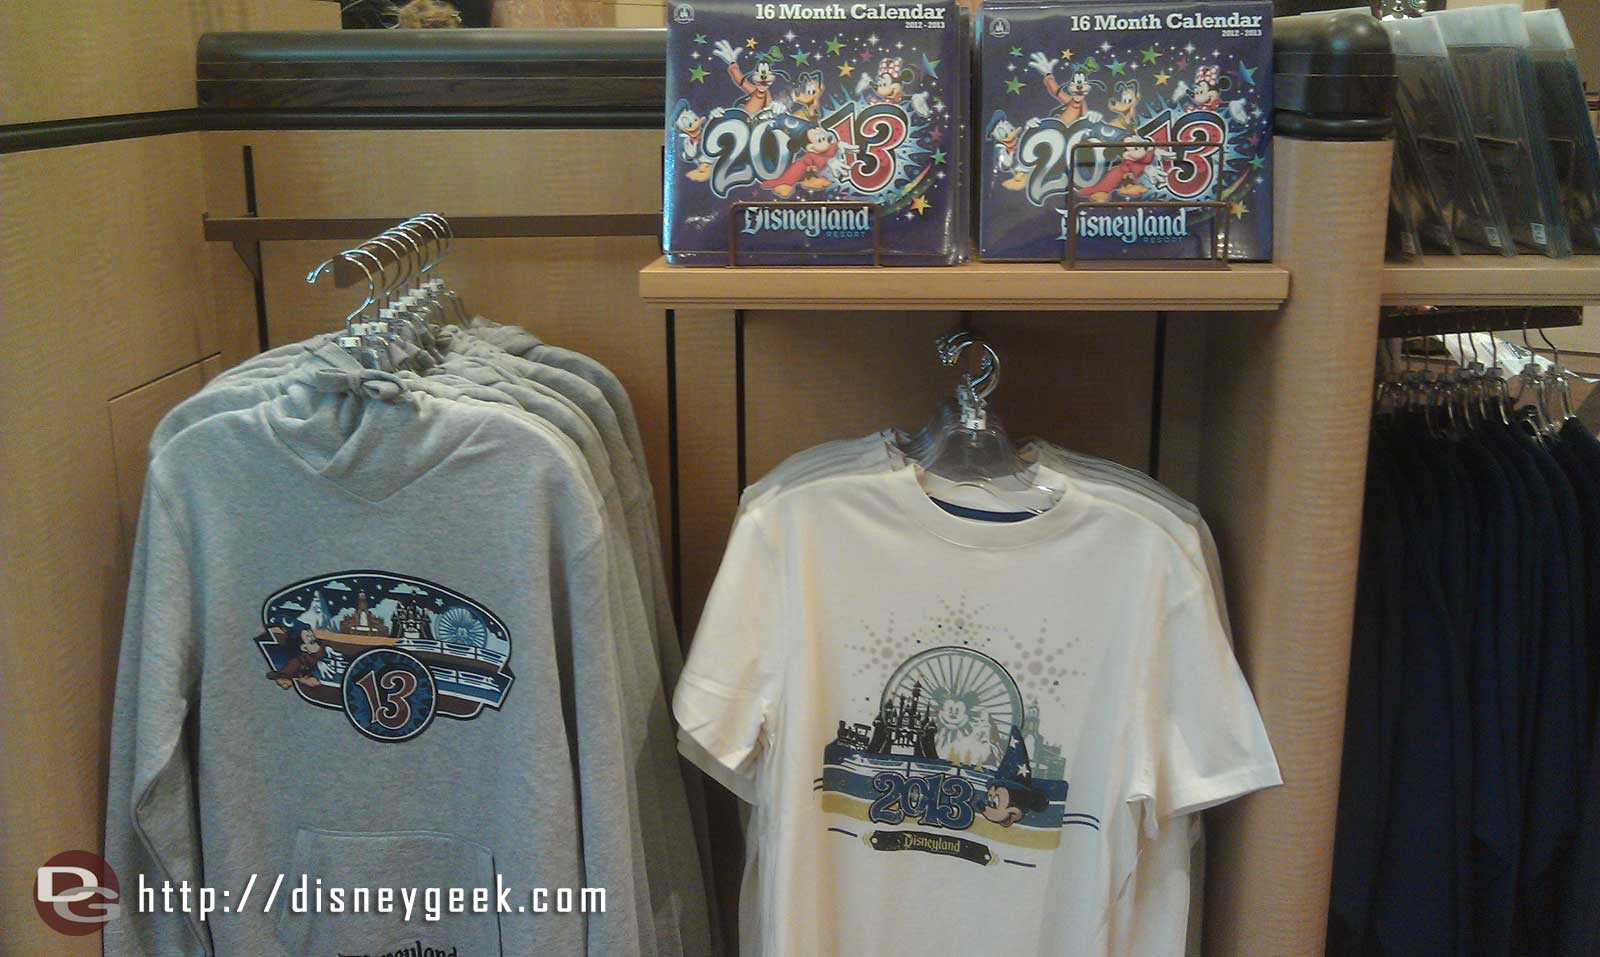 2013 merchandise in Elias & Co.